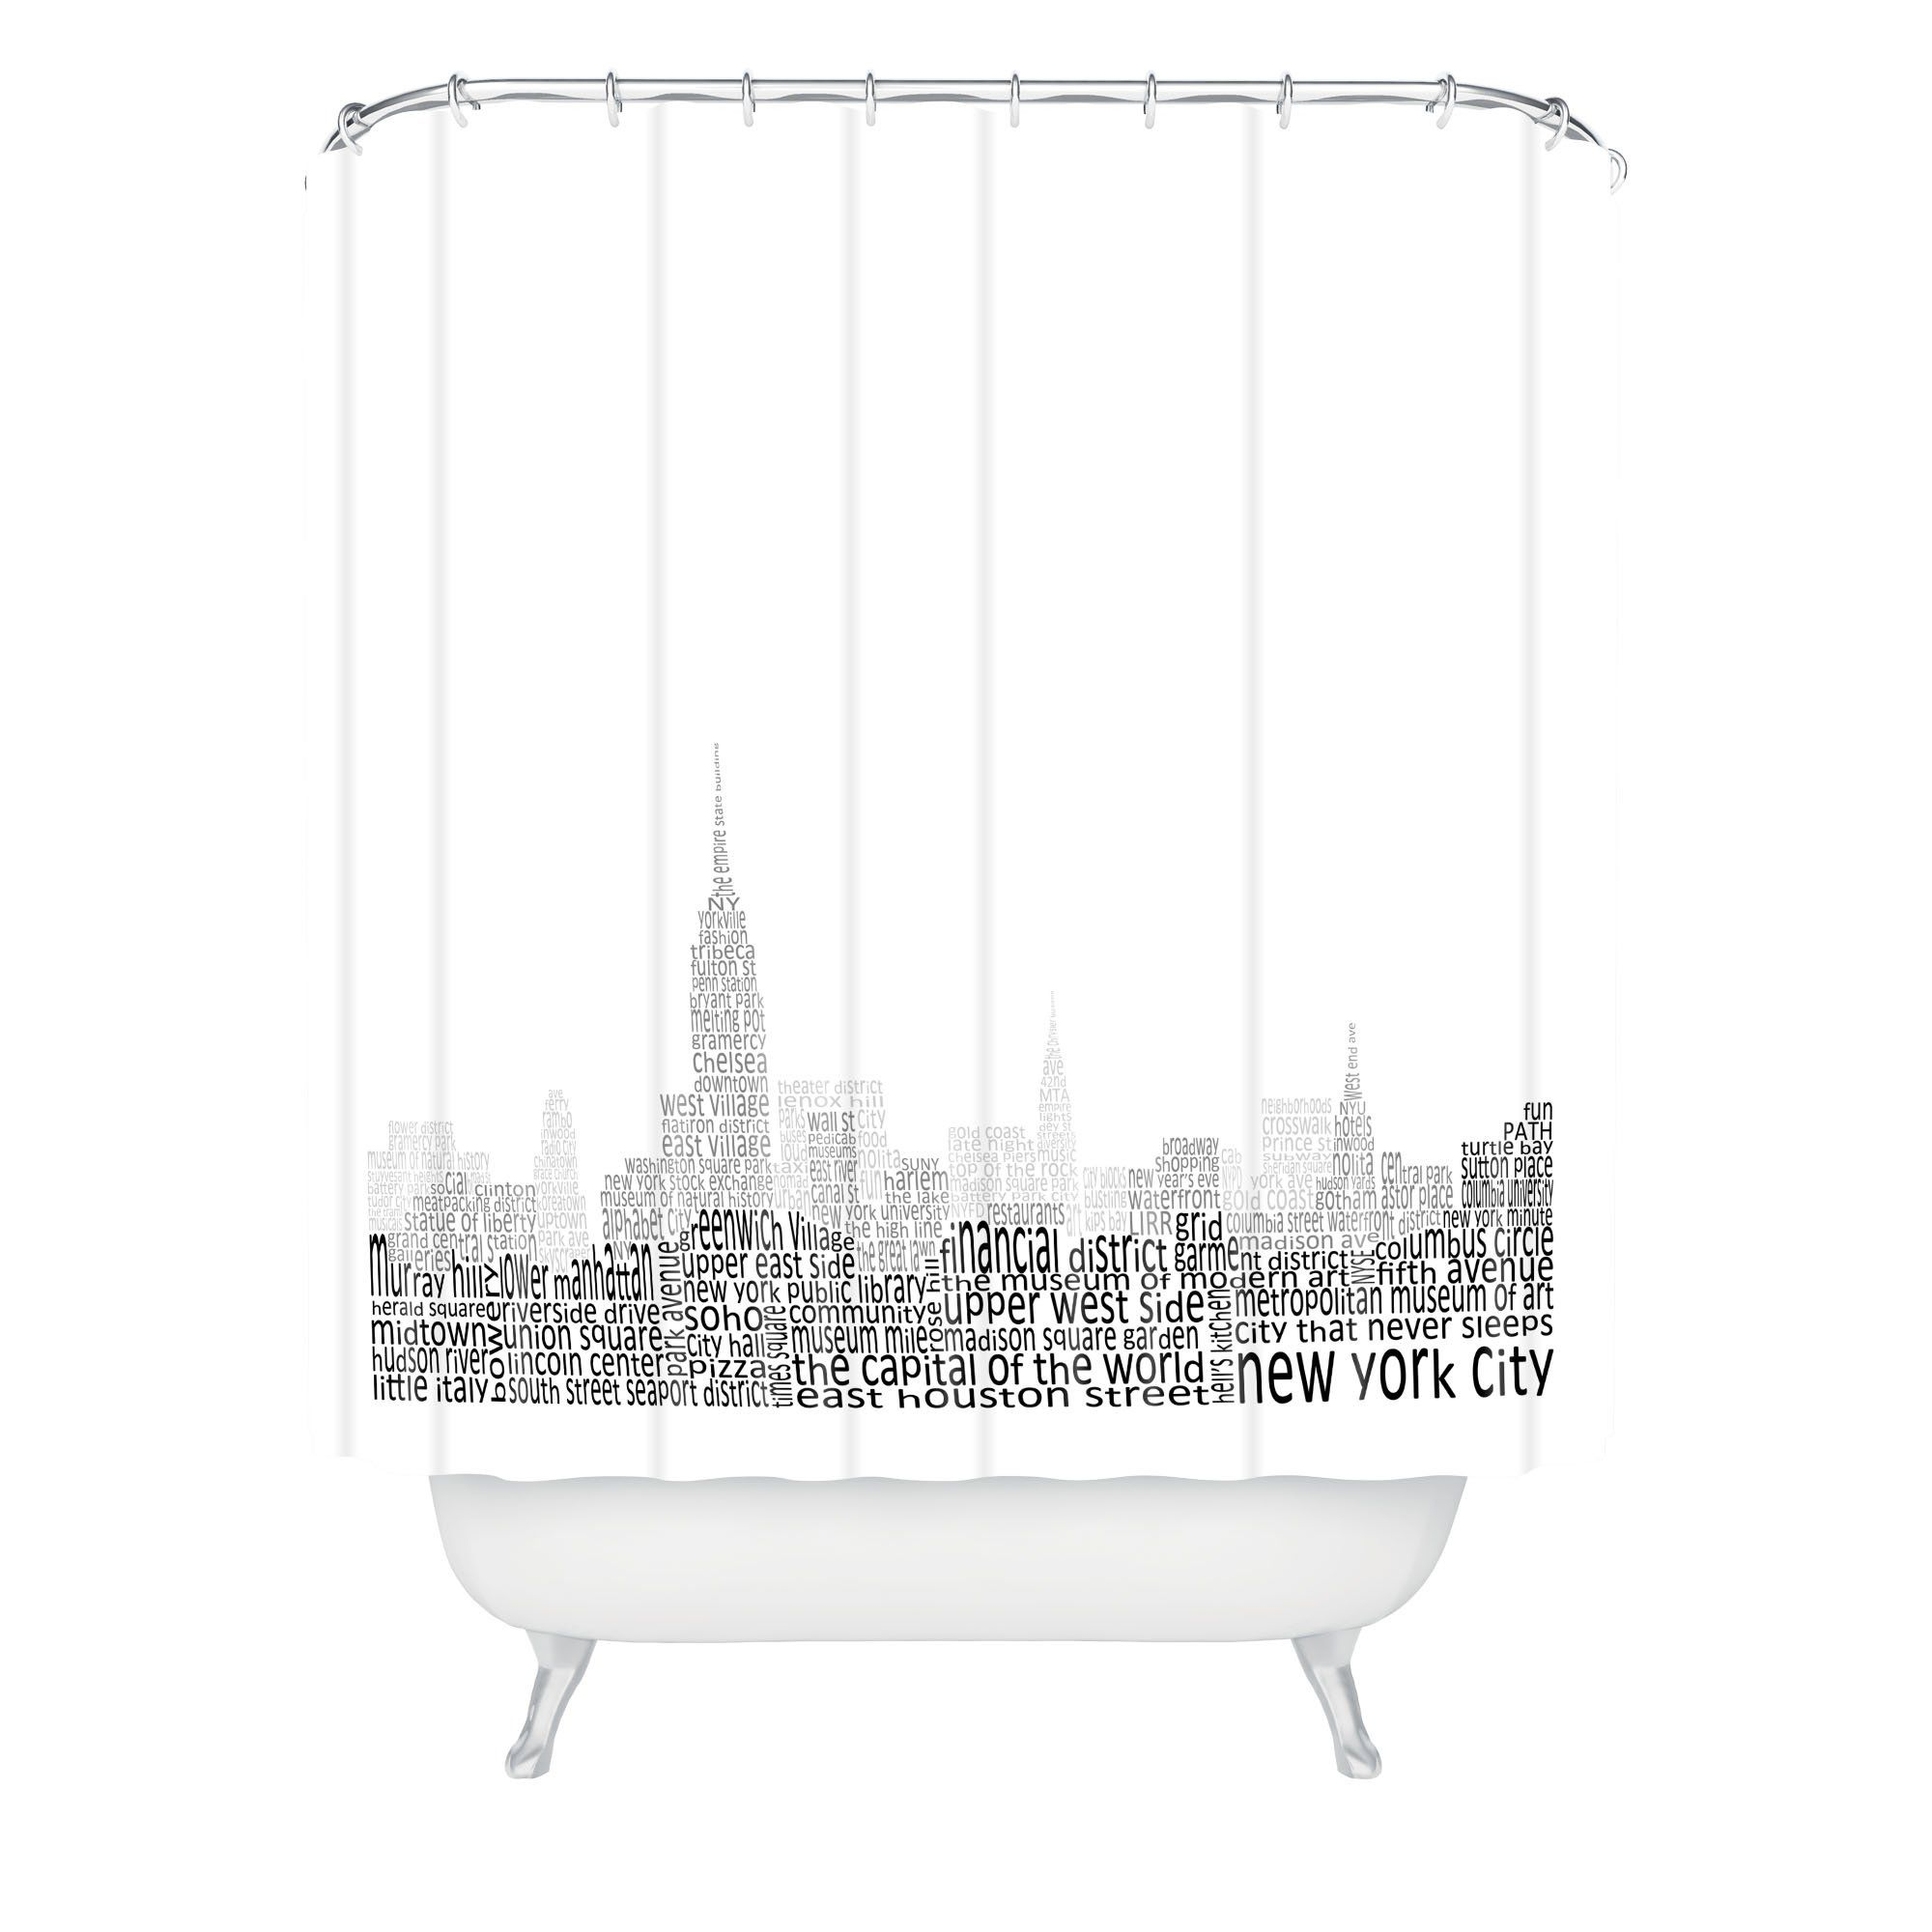 New York Skyline 1 Shower Curtain Restudio Designs With Images